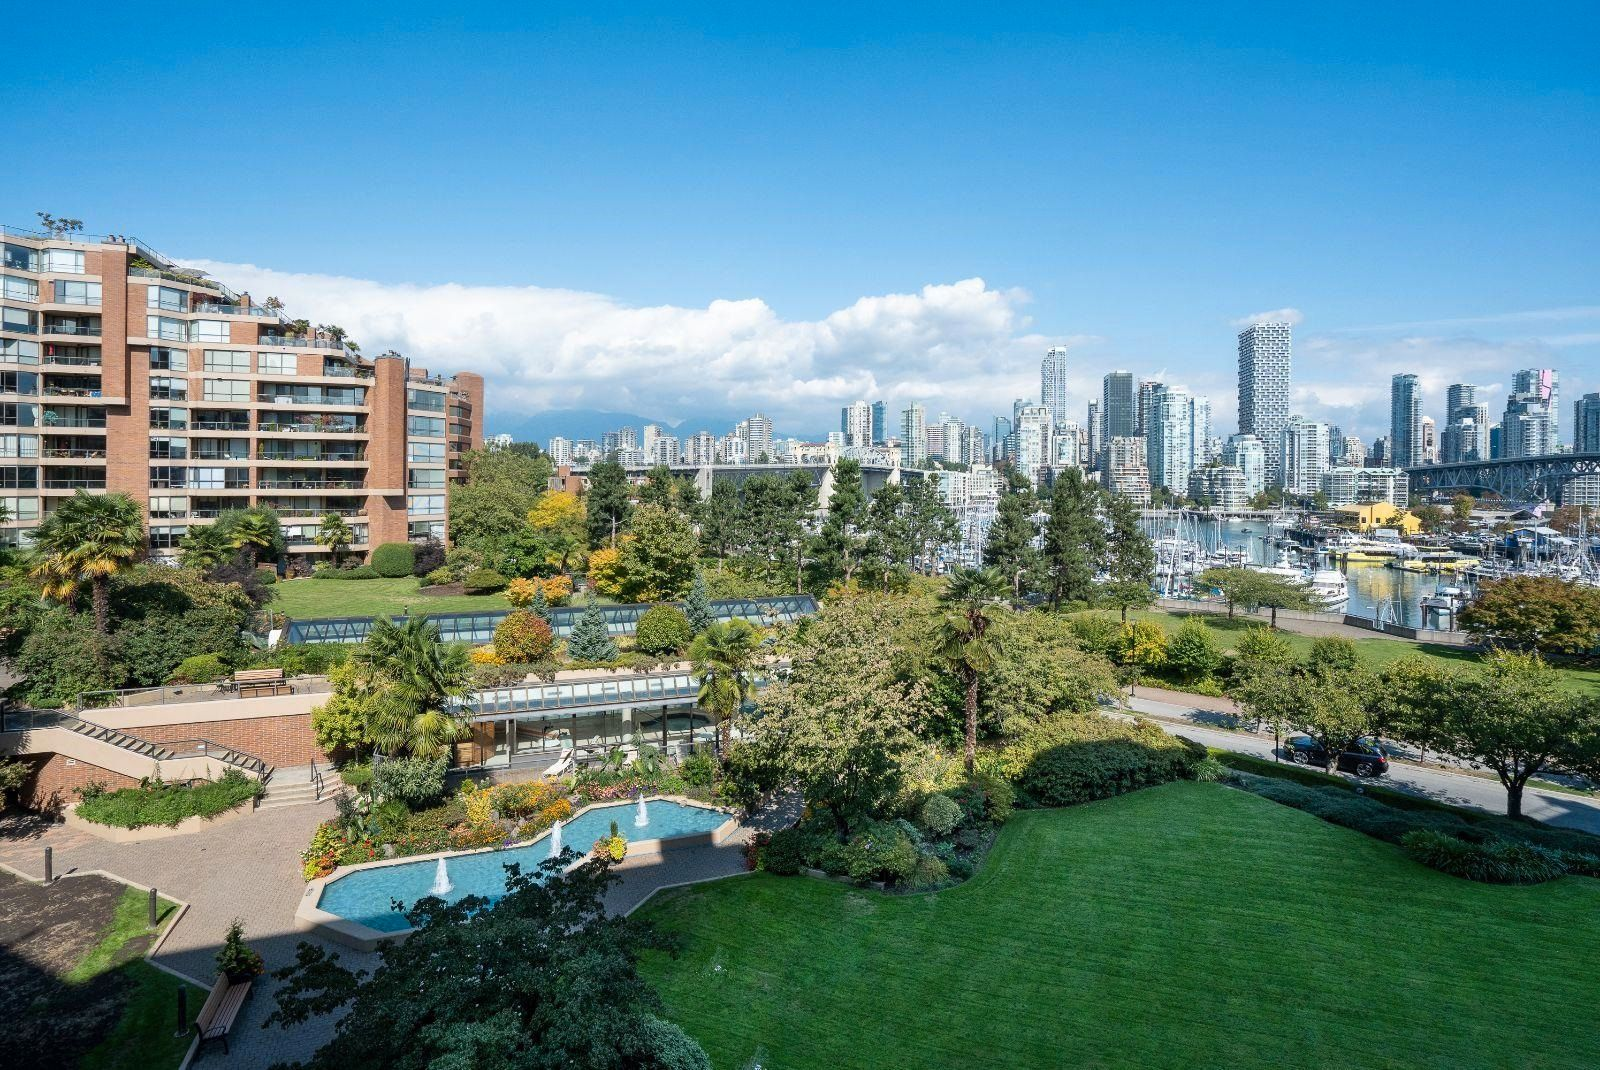 """Main Photo: 405 1490 PENNYFARTHING Drive in Vancouver: False Creek Condo for sale in """"Harbour Cove"""" (Vancouver West)  : MLS®# R2615809"""